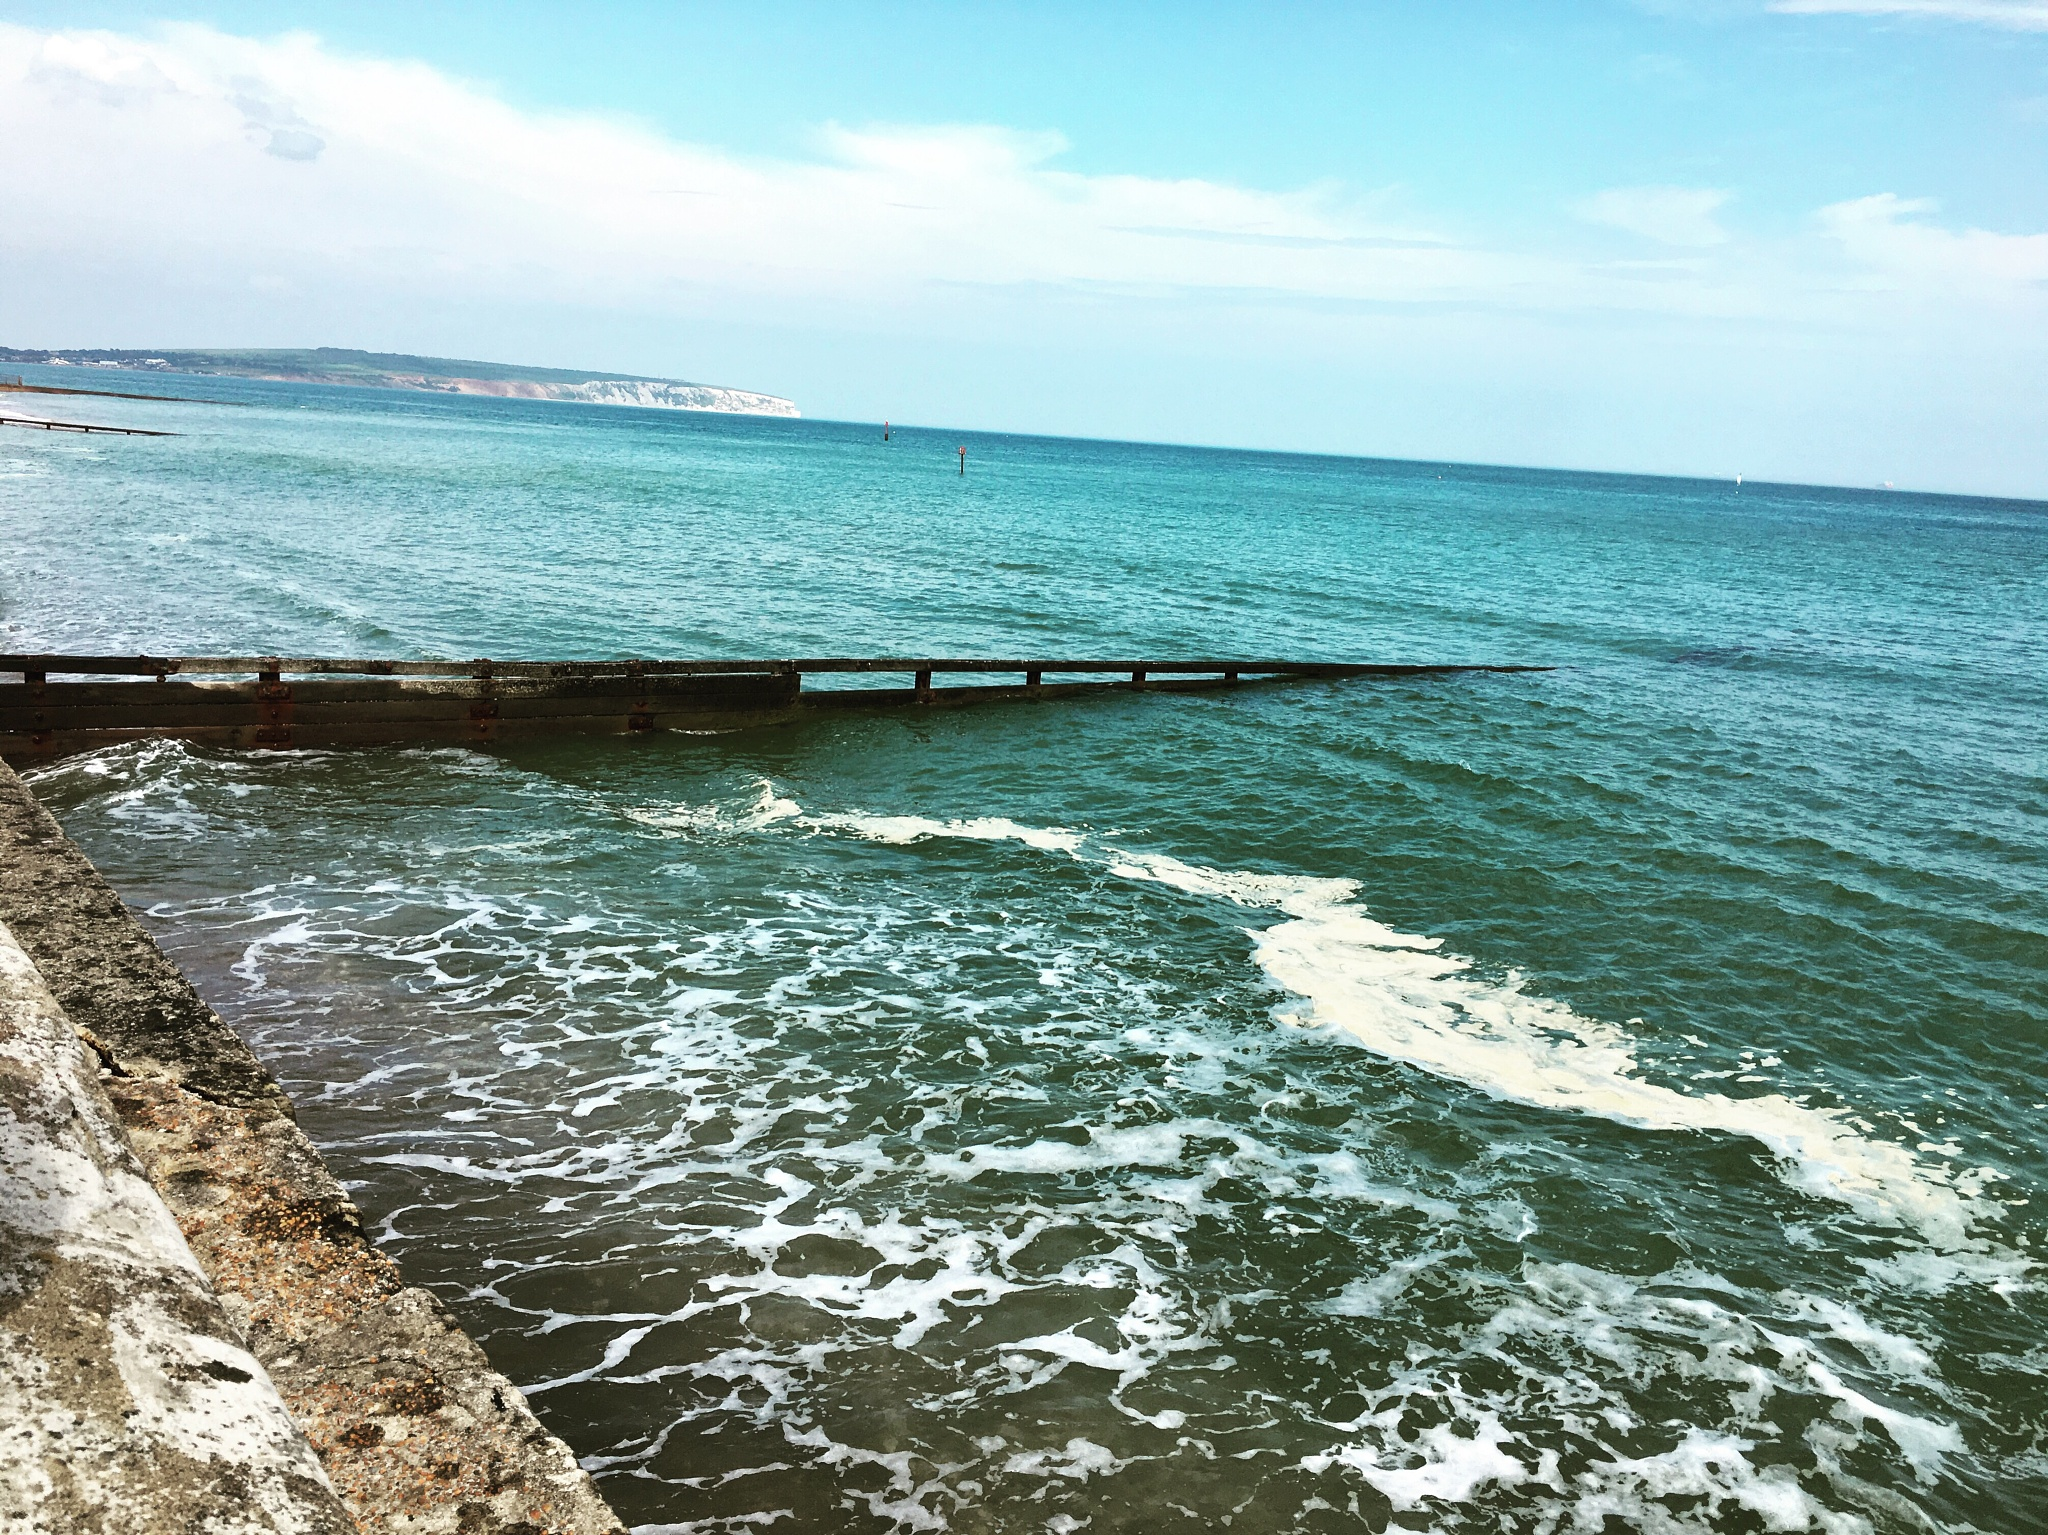 Taken from my iPhone. Shanklin beach  by Tamsyn Gustar